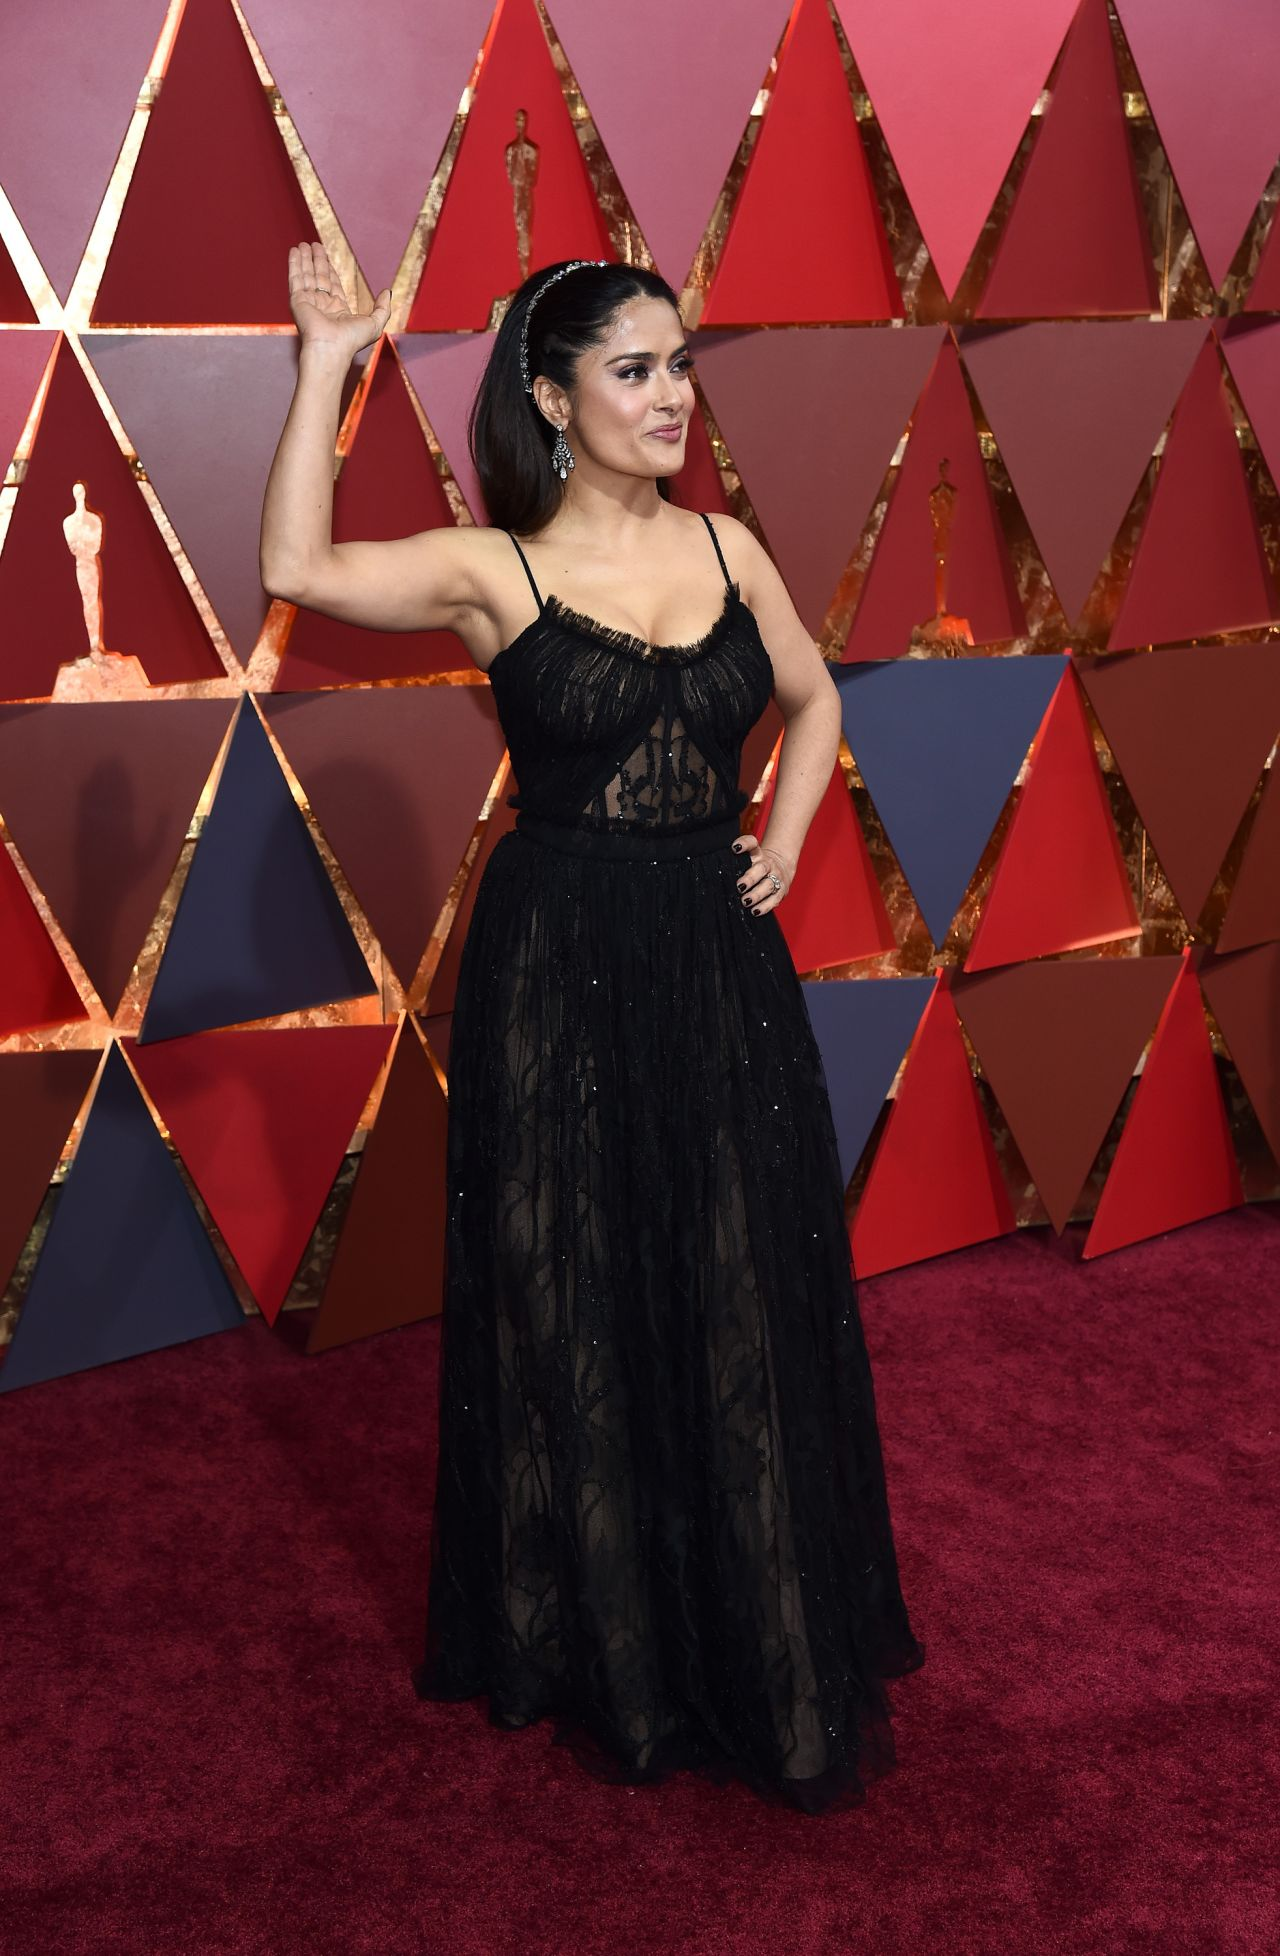 http://celebmafia.com/wp-content/uploads/2017/02/salma-hayek-oscars-2017-red-carpet-in-hollywood-13.jpg